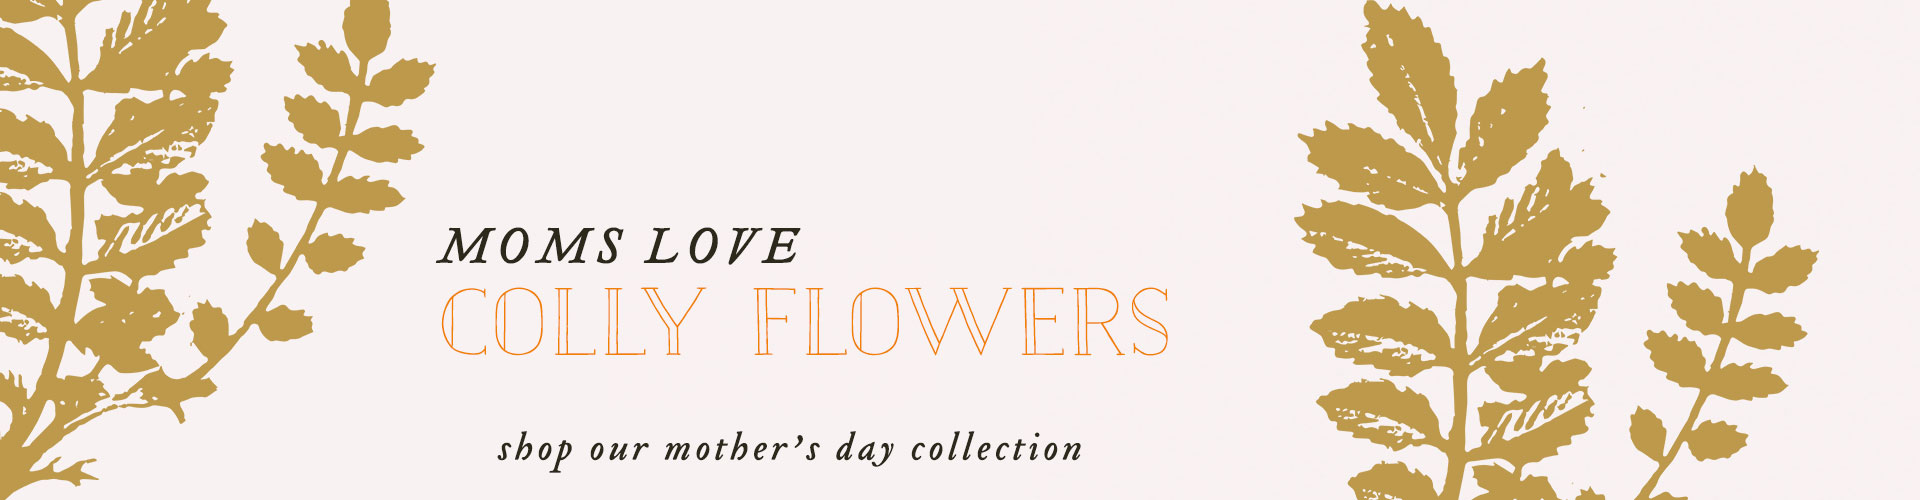 morristown nj flower delivery | colly flowers